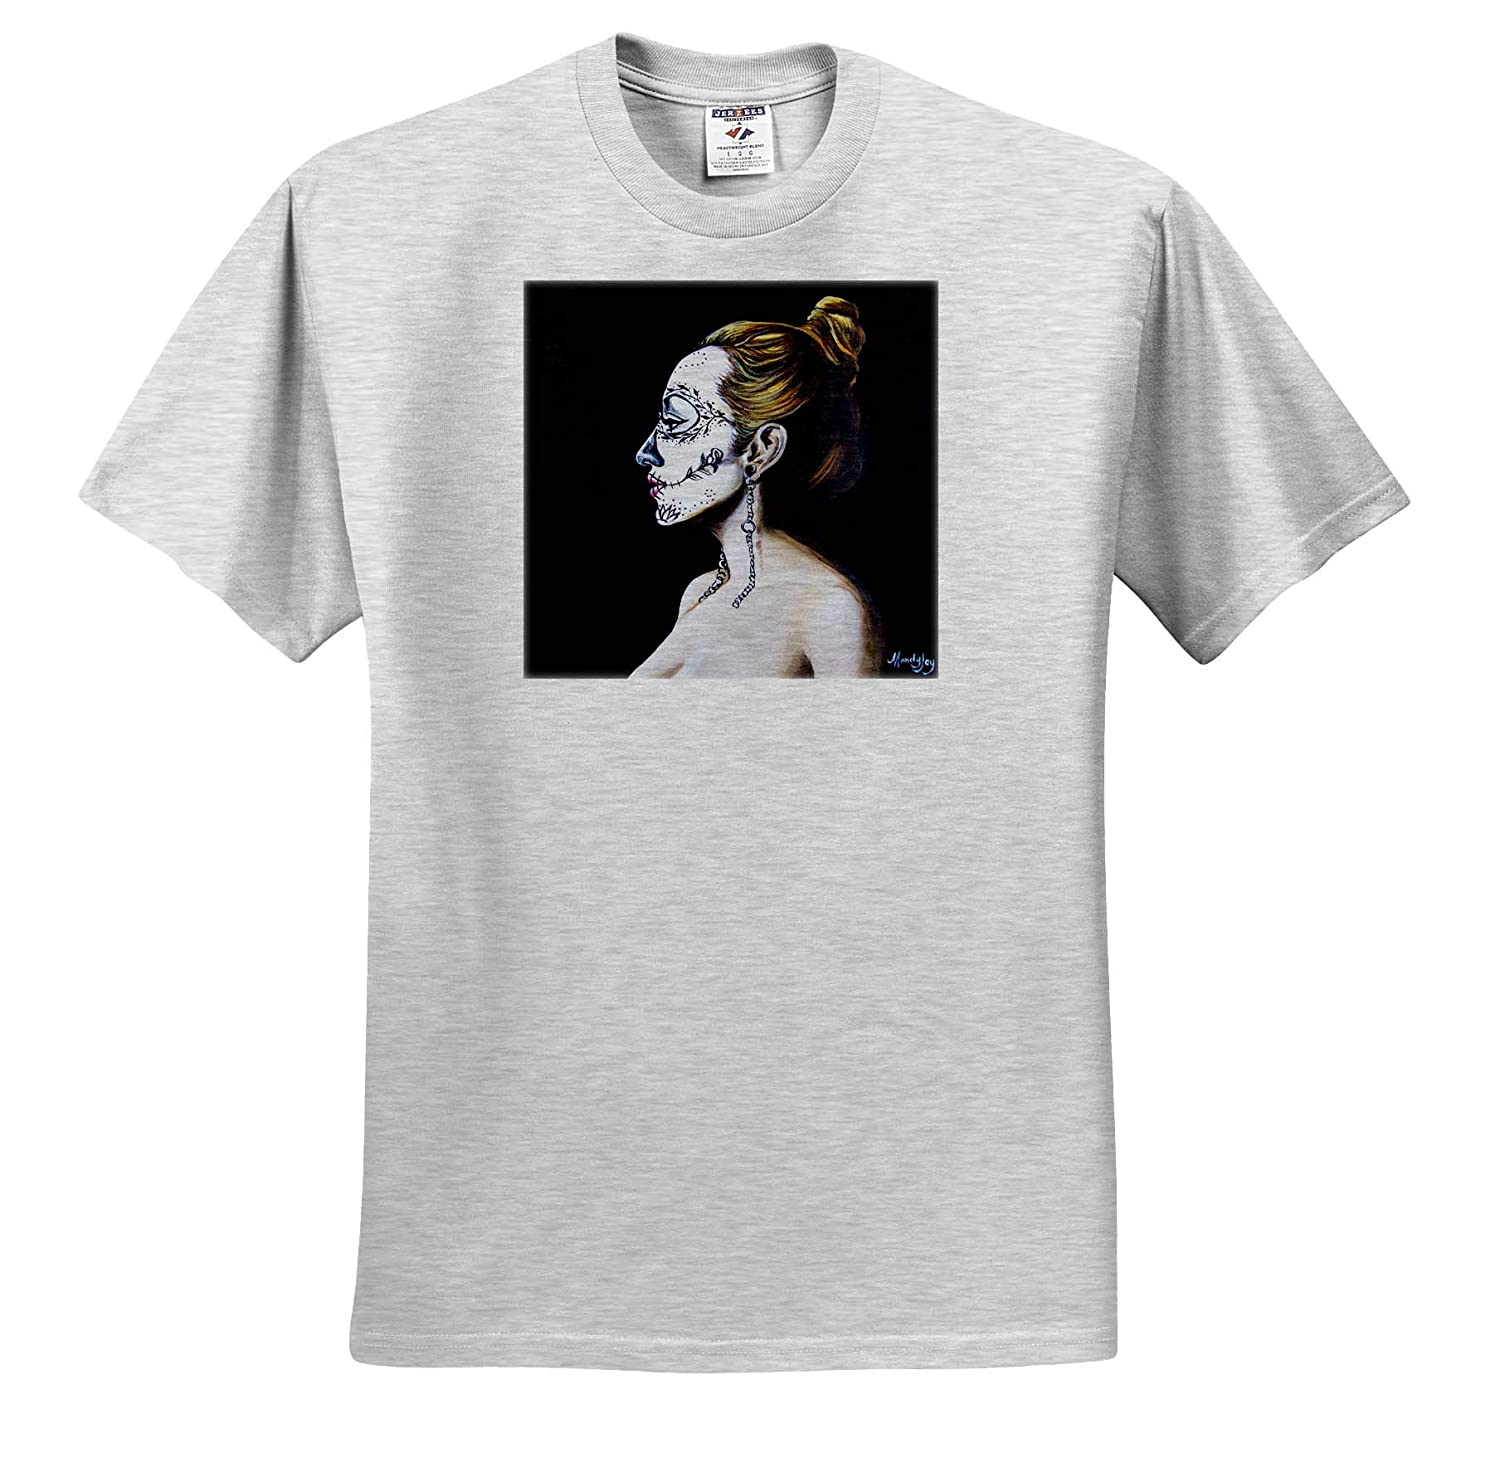 - T-Shirts 3dRose Art by Mandy Joy Girls an Image of a Girl with Day of The Dead Make-up Day of The Dead